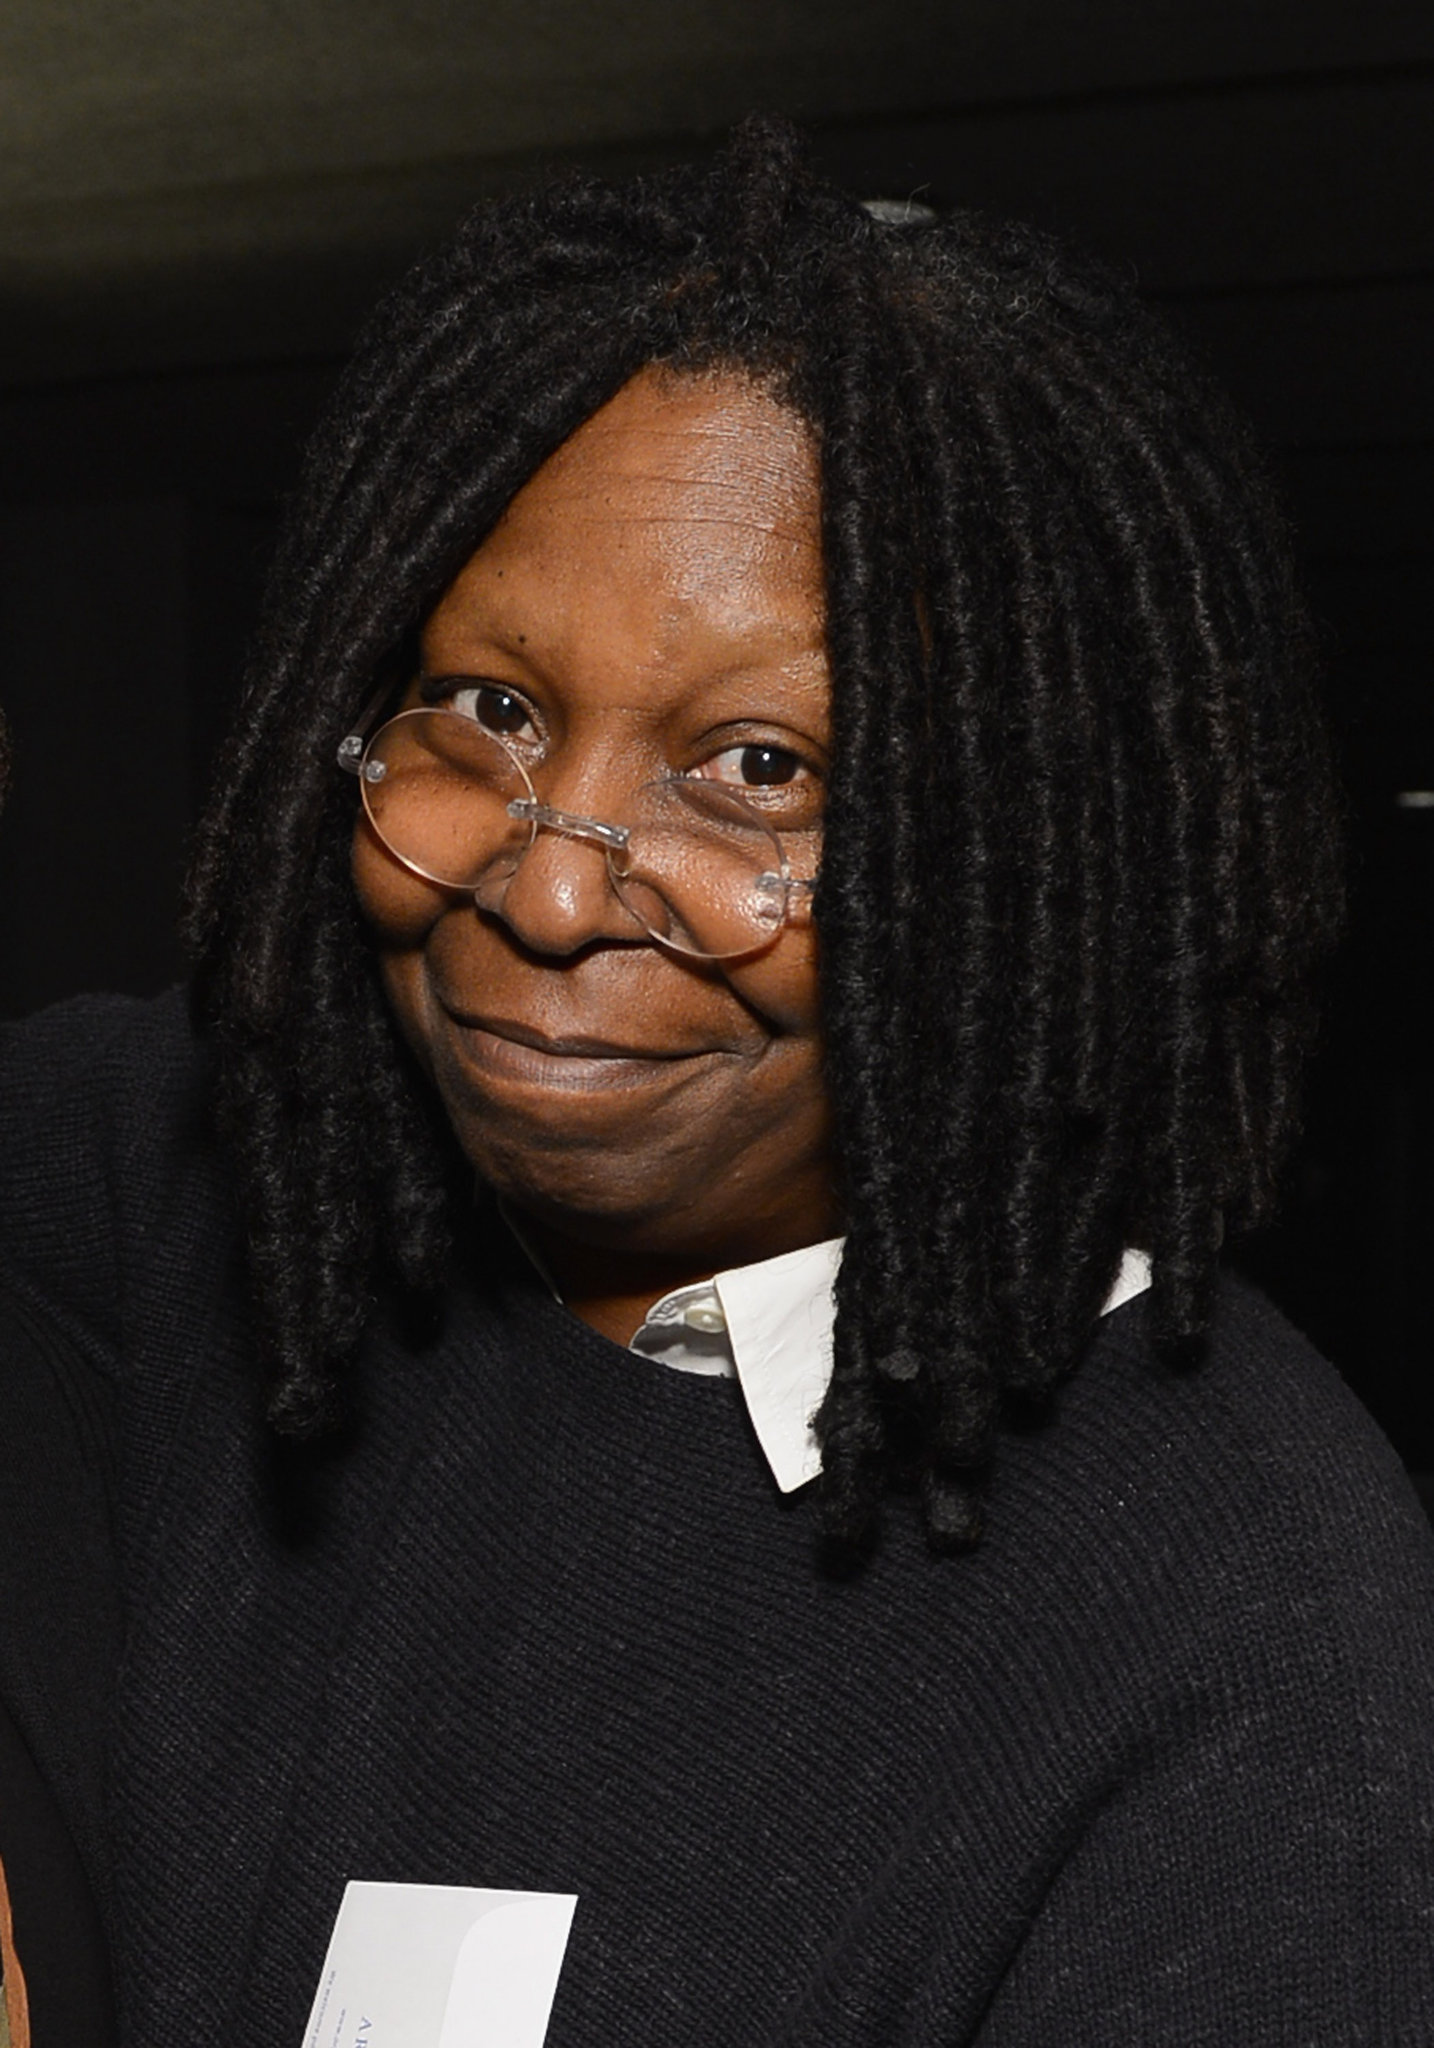 Whoopi Goldberg Plays But Not Too Much Working At Cuomo Event